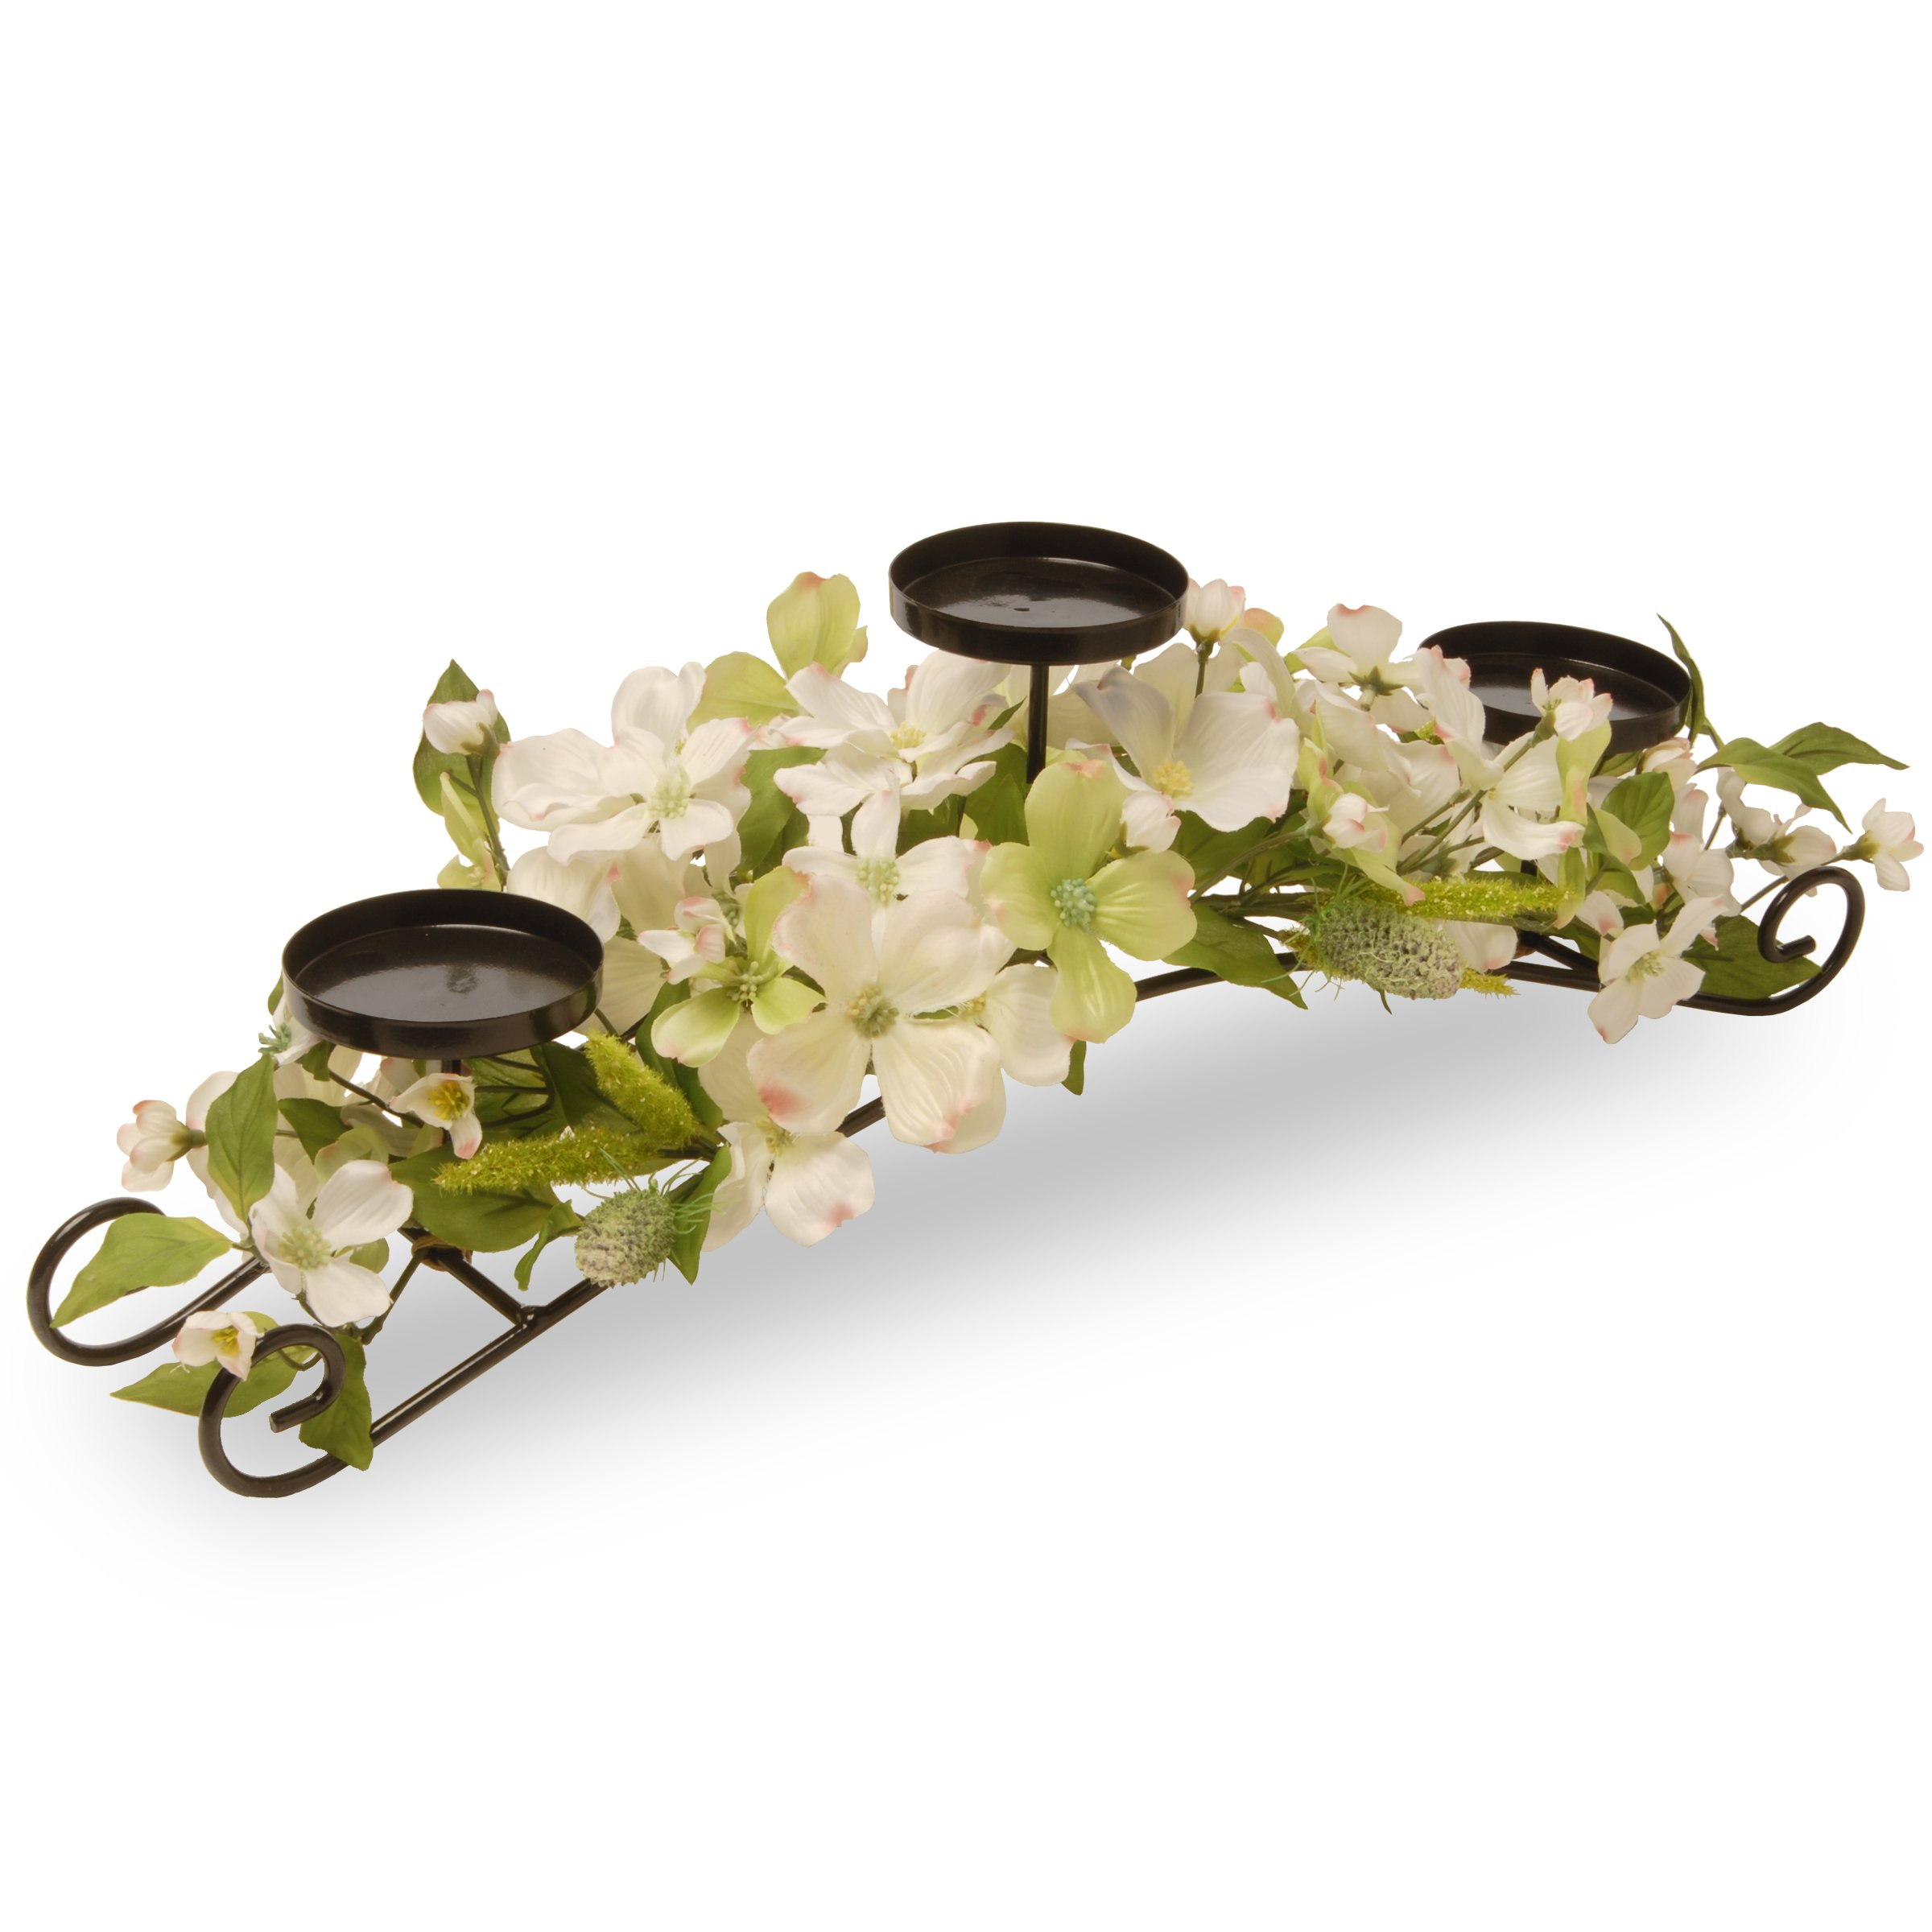 National Tree 26 Inch 3 Candleholder Metal Frame with White and Yellow Dogwood Flowers (ED3-111-26C-B)